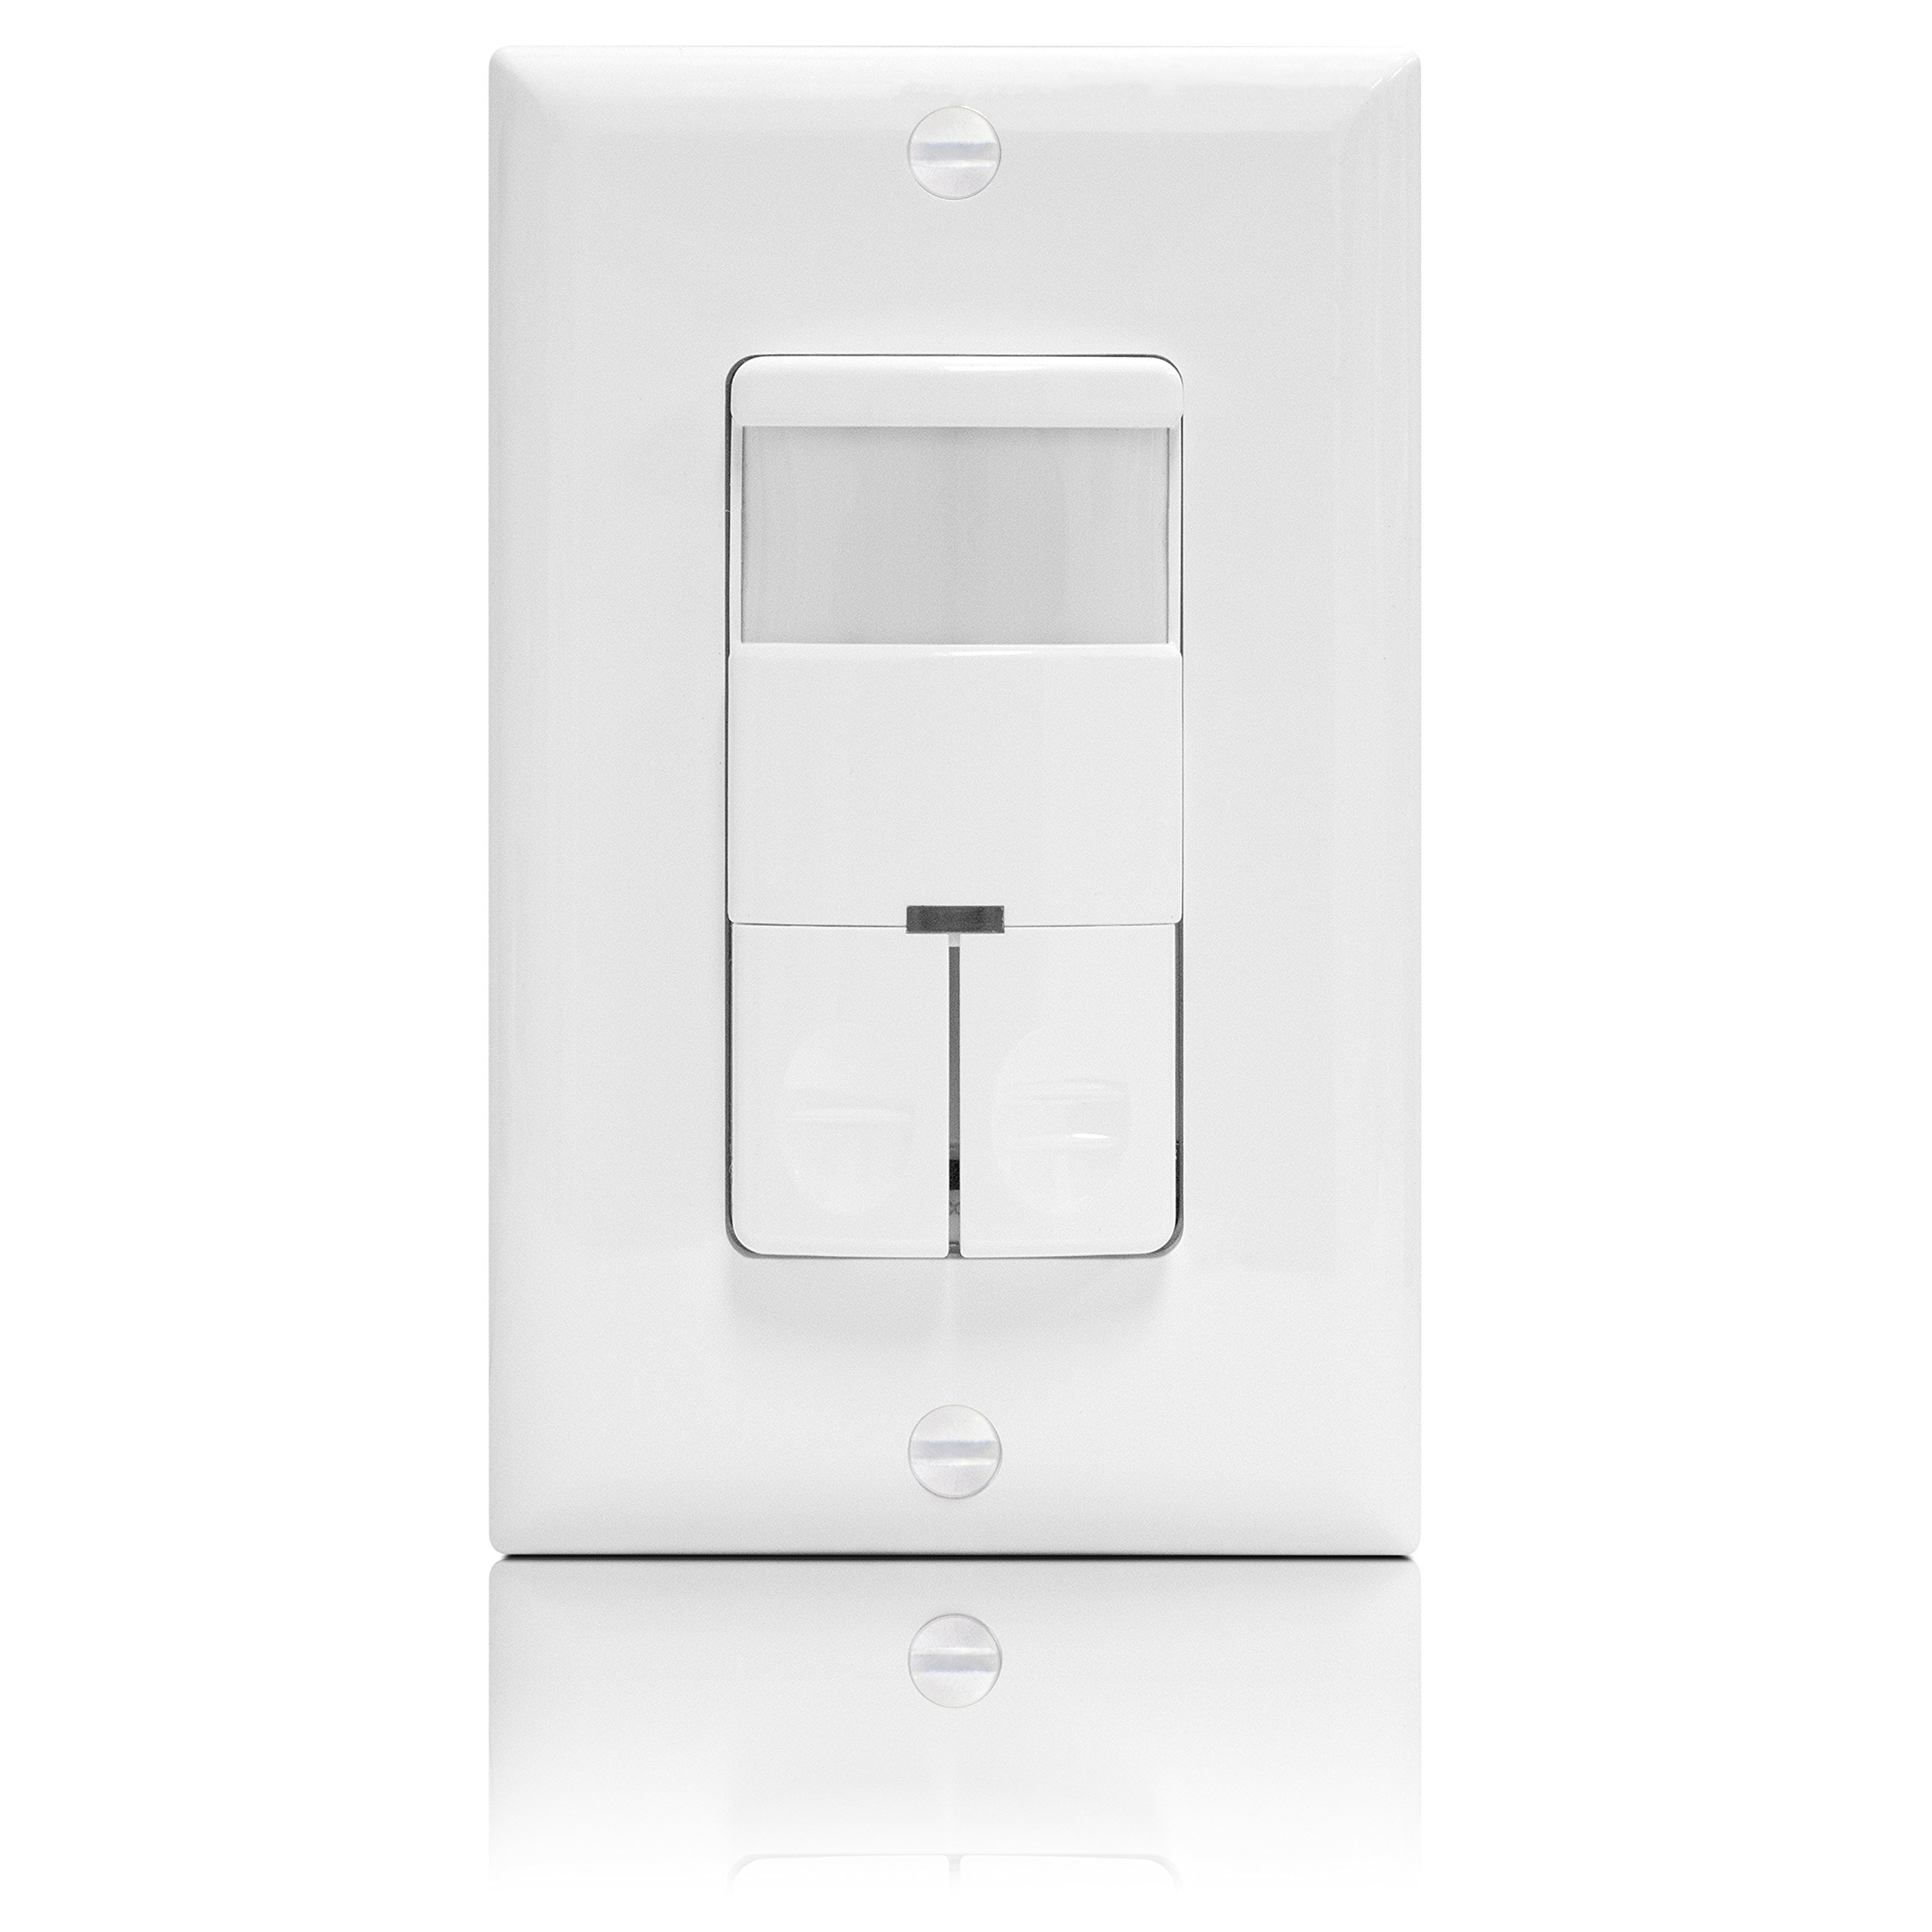 Enerlites DWOS-JD Motion Sensor Switch Dual Relay, Bi-Level Occupancy / Vacancy Sensor, PIR Passive Infrared, NO NEUTRAL WIRE REQUIRED, White